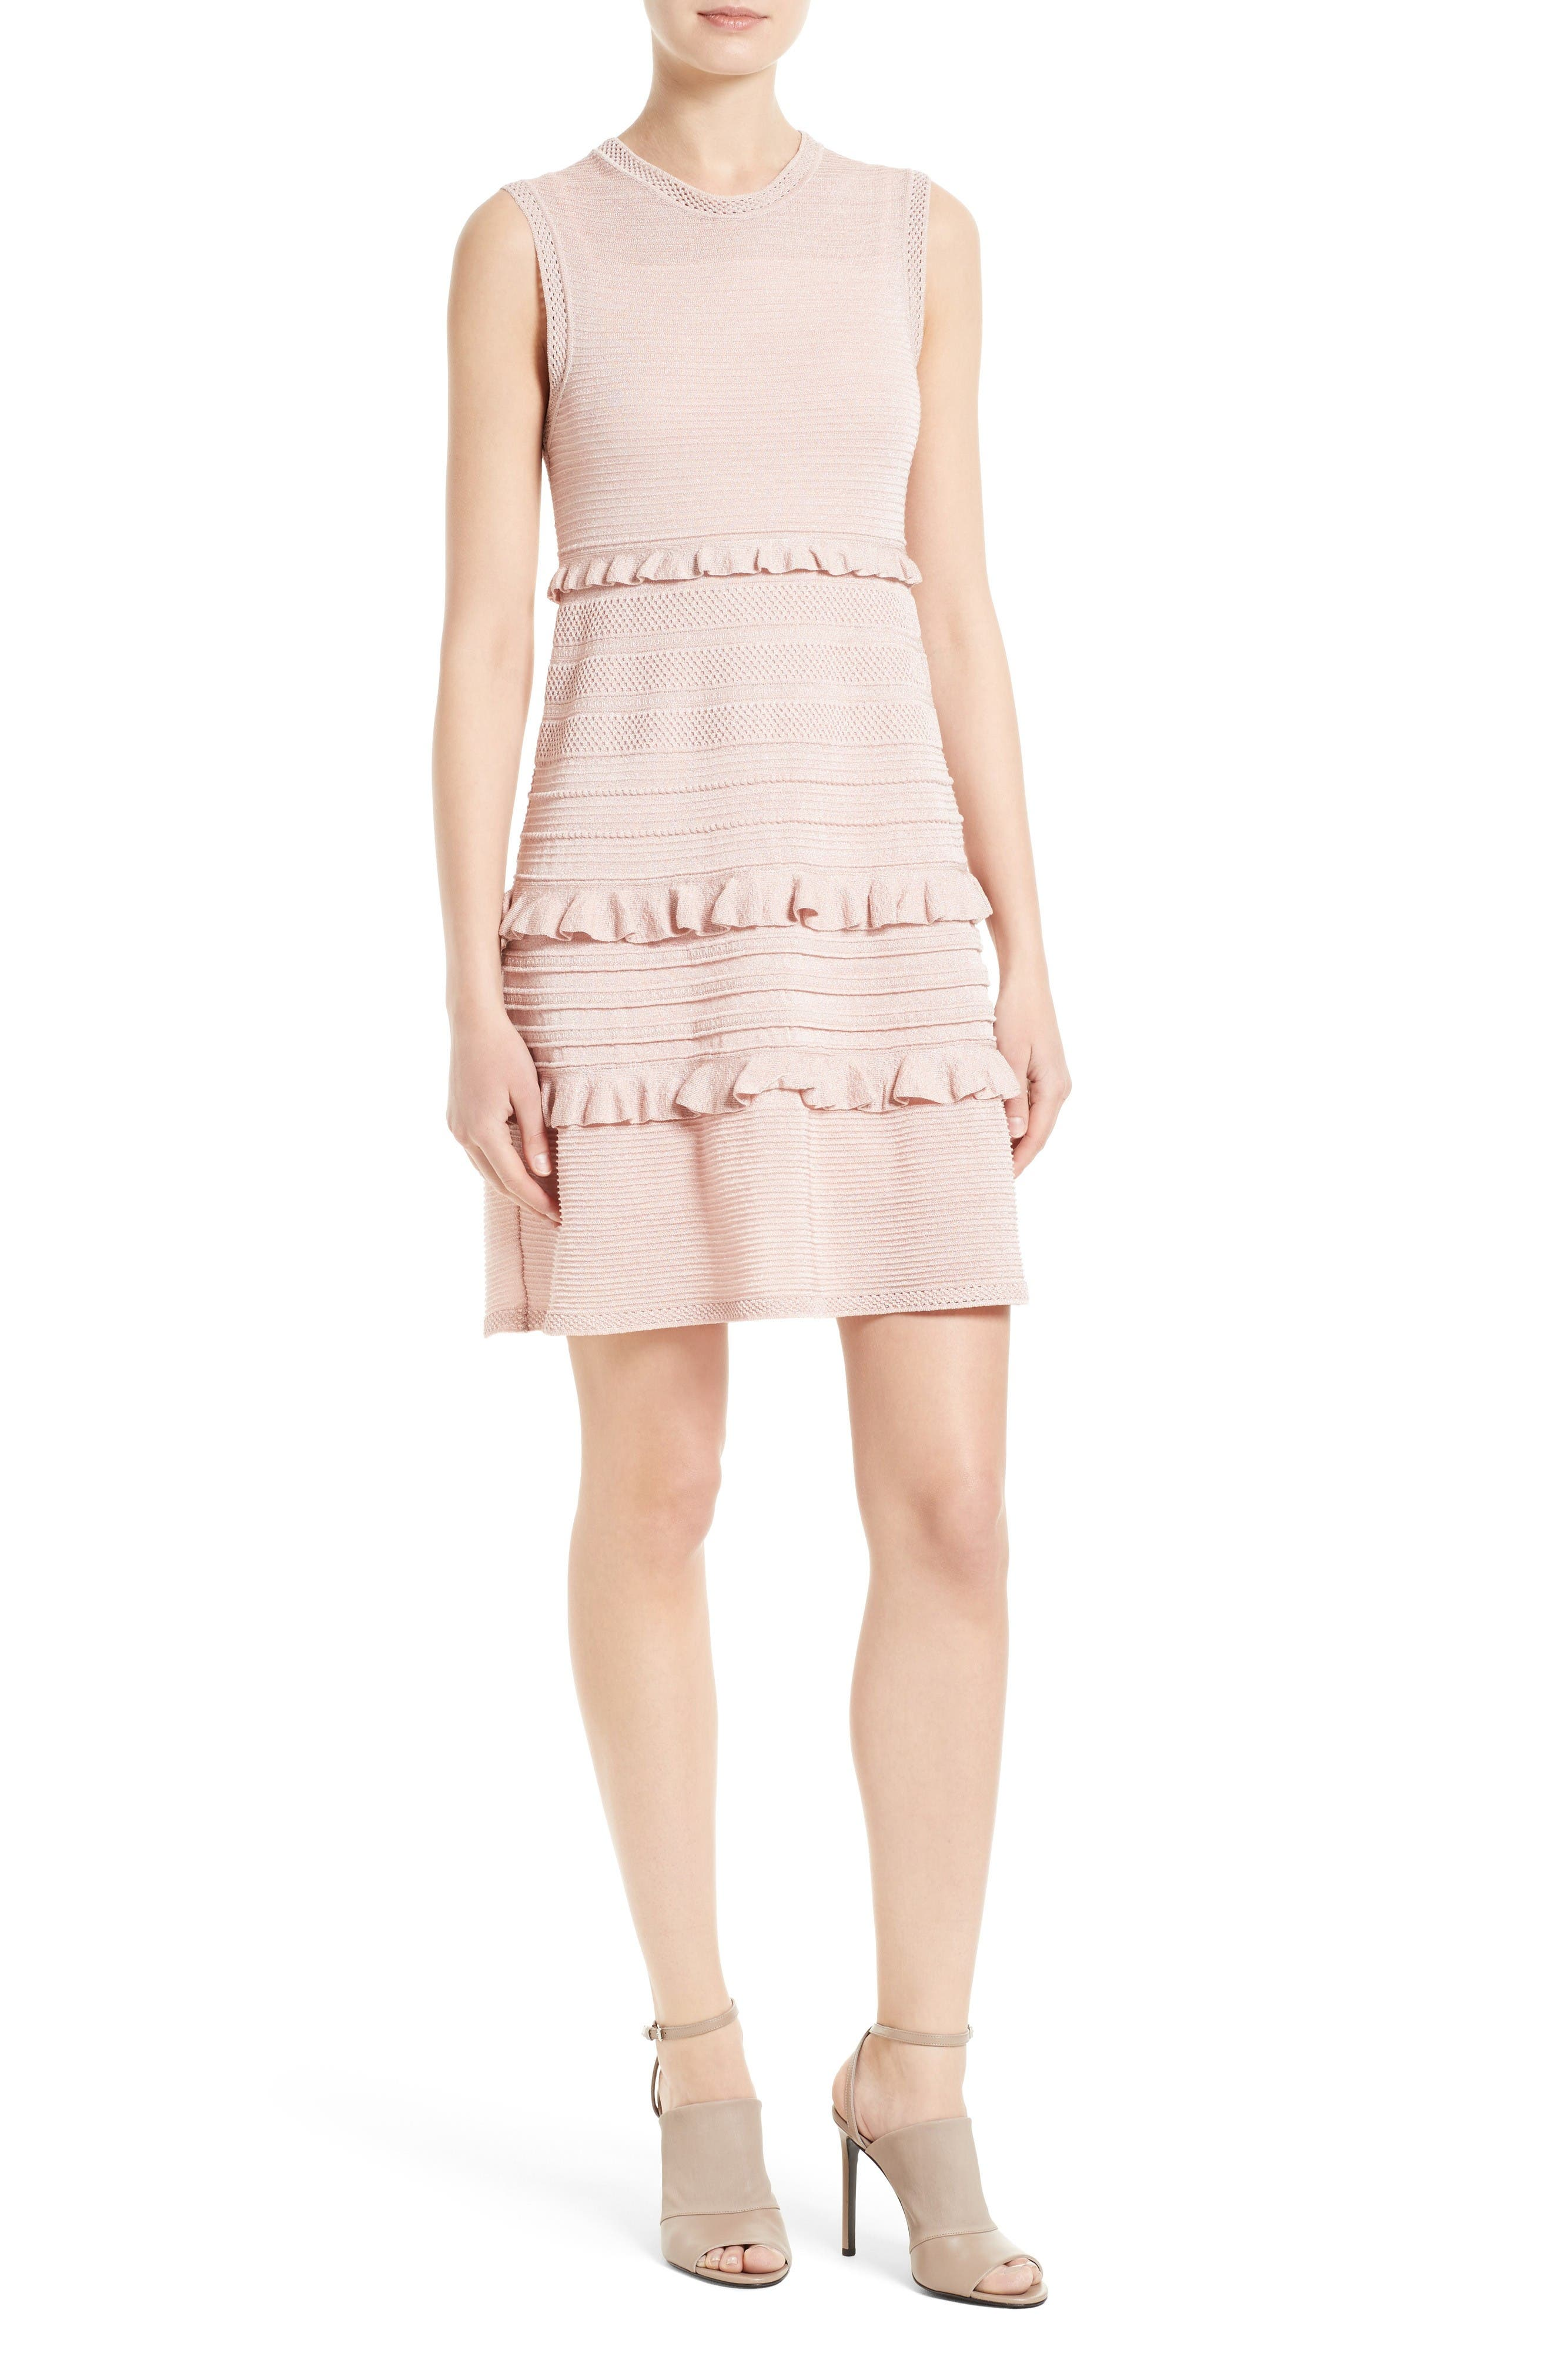 M Missoni Ruffle Metallic Mouline Knit Dress